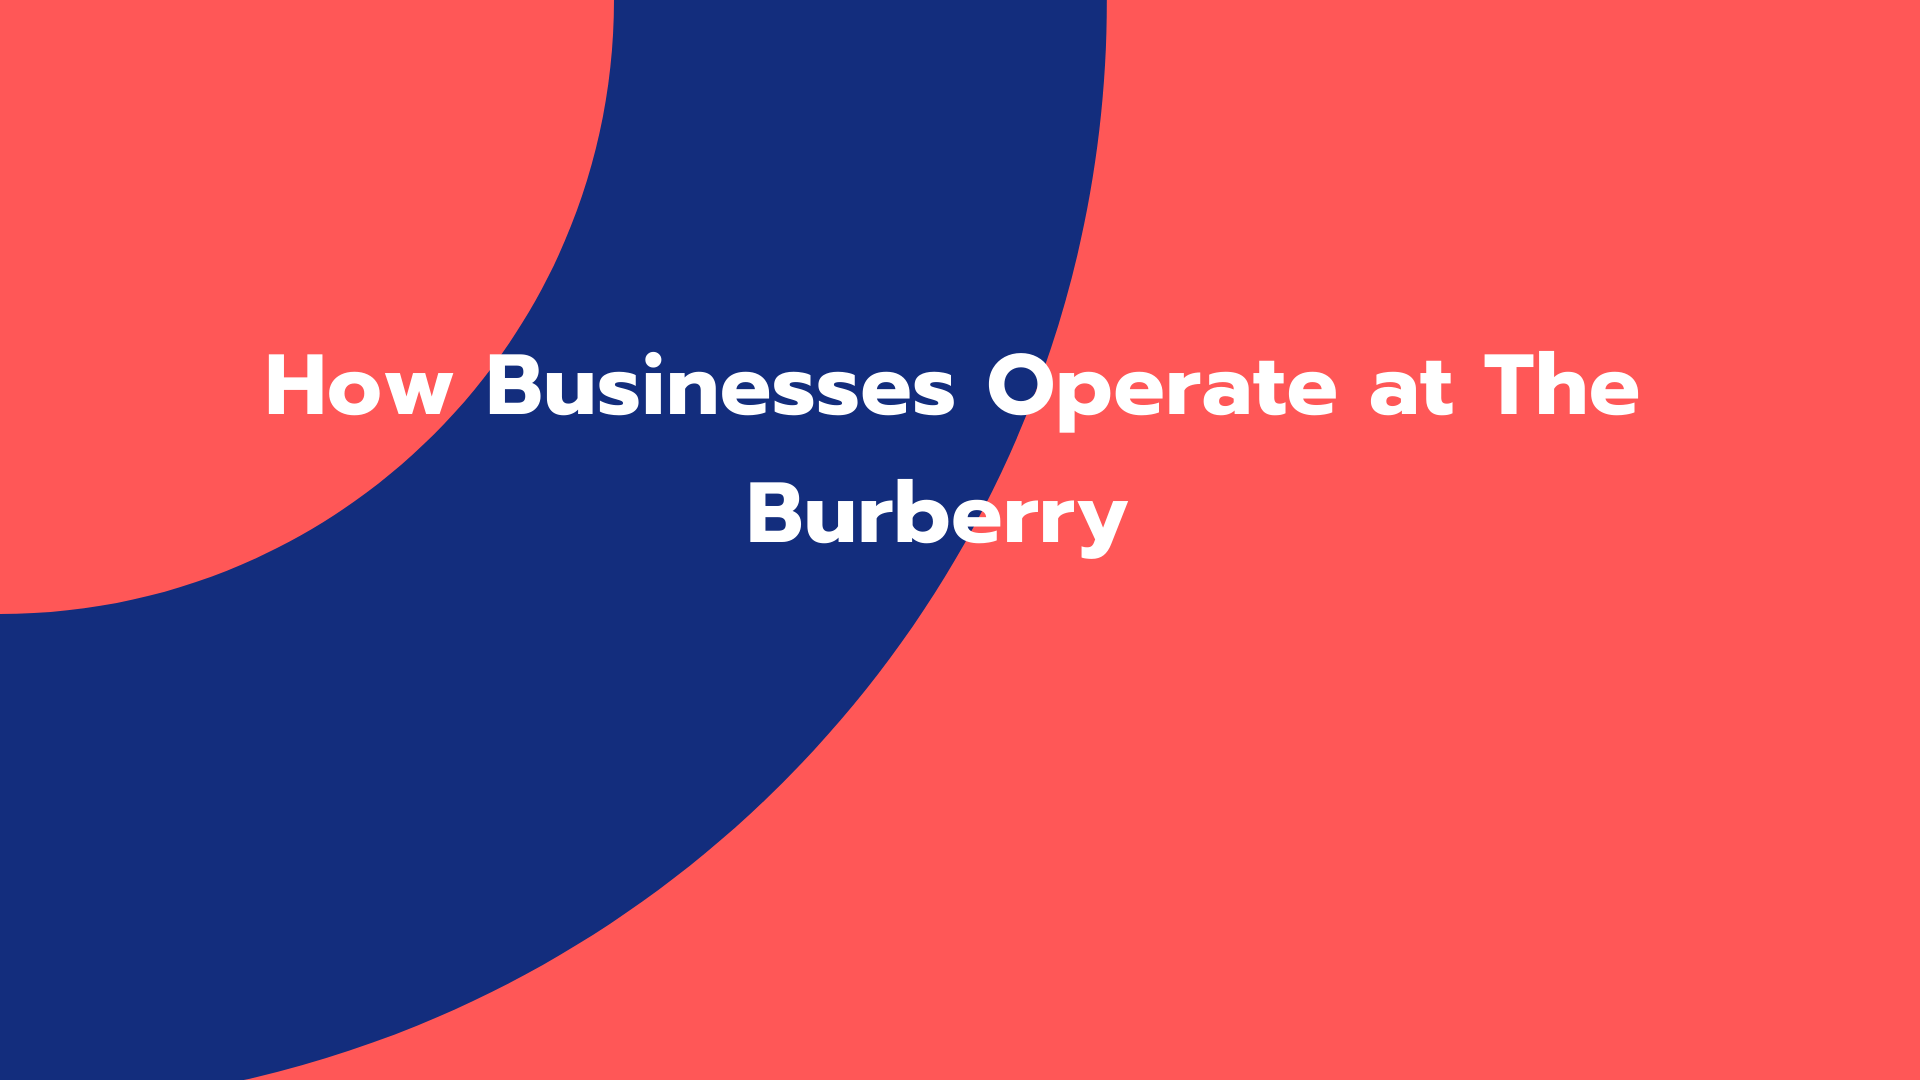 How Businesses Operate at The Burberry (